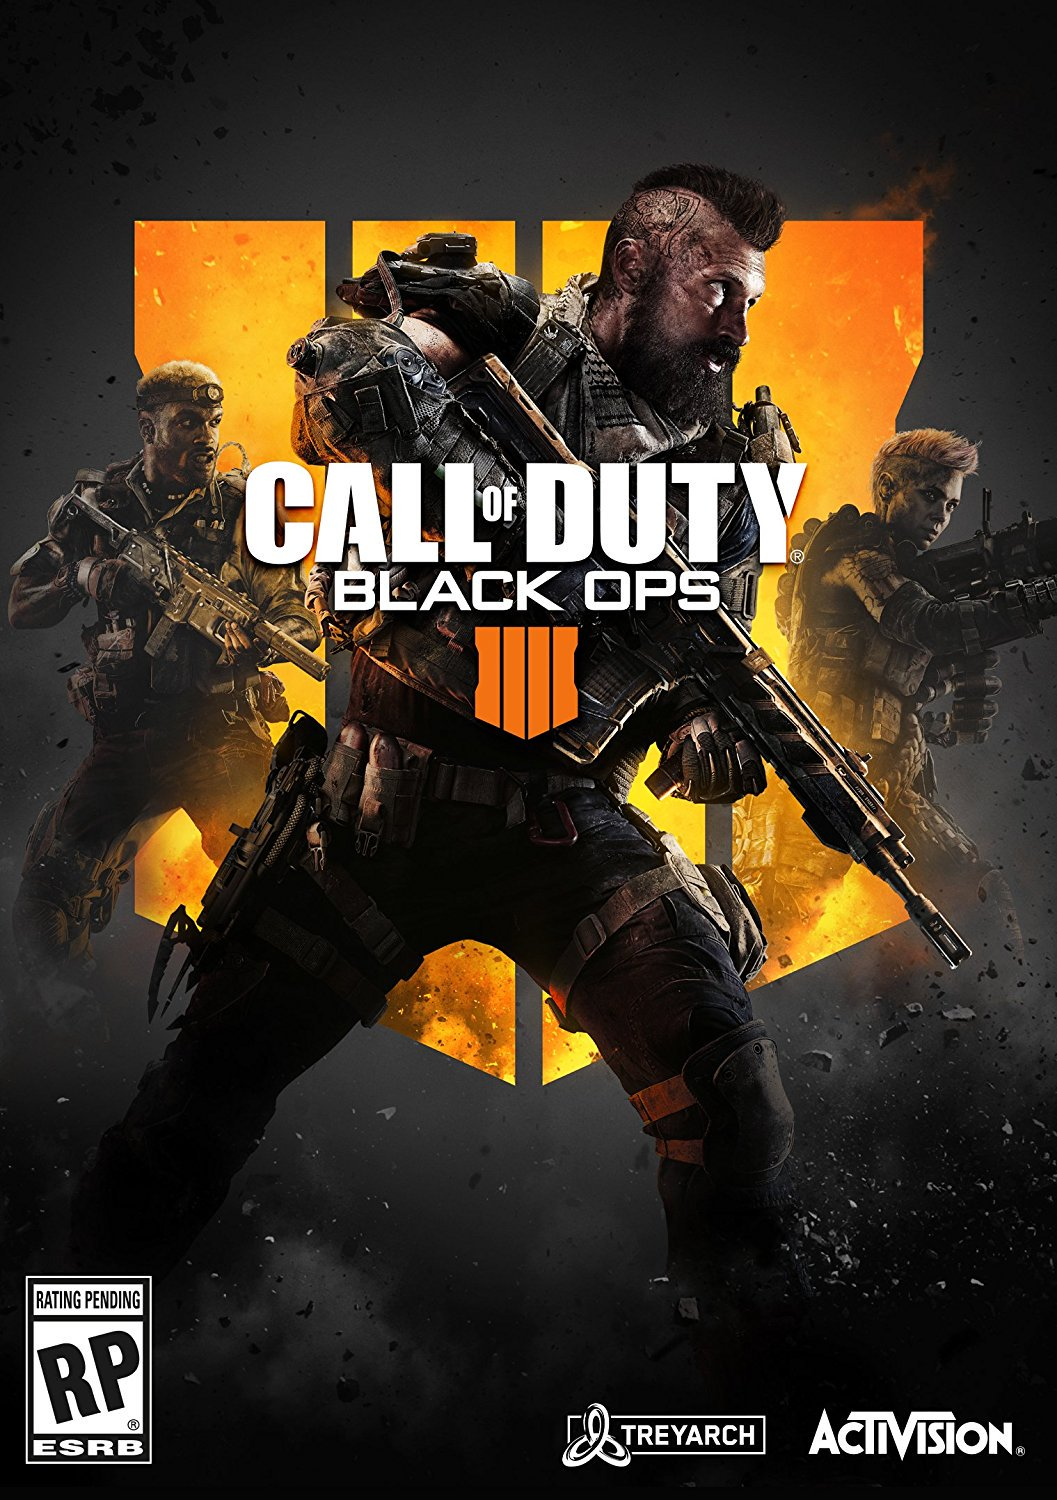 Call of Duty: Black Ops 4 | Call of Duty Wiki | FANDOM powered by Wikia